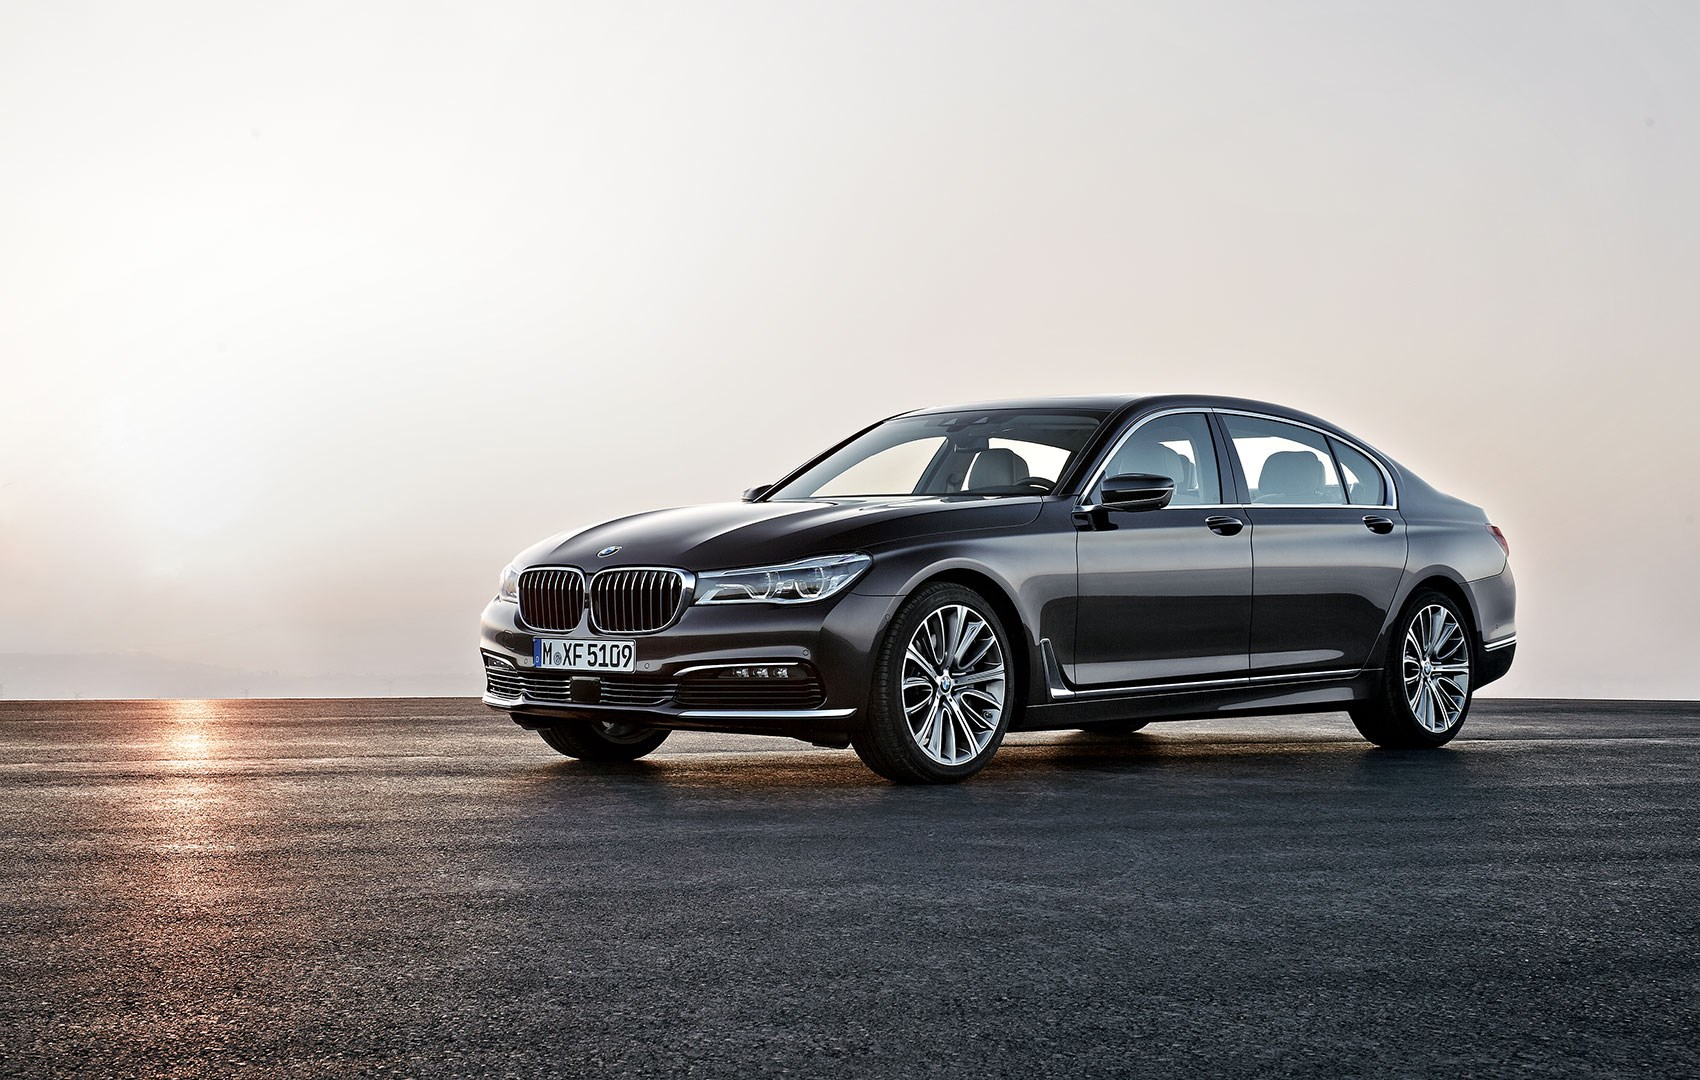 bmw 7 series 2015 in pictures munich 39 s new part carbon limo unveiled car magazine. Black Bedroom Furniture Sets. Home Design Ideas